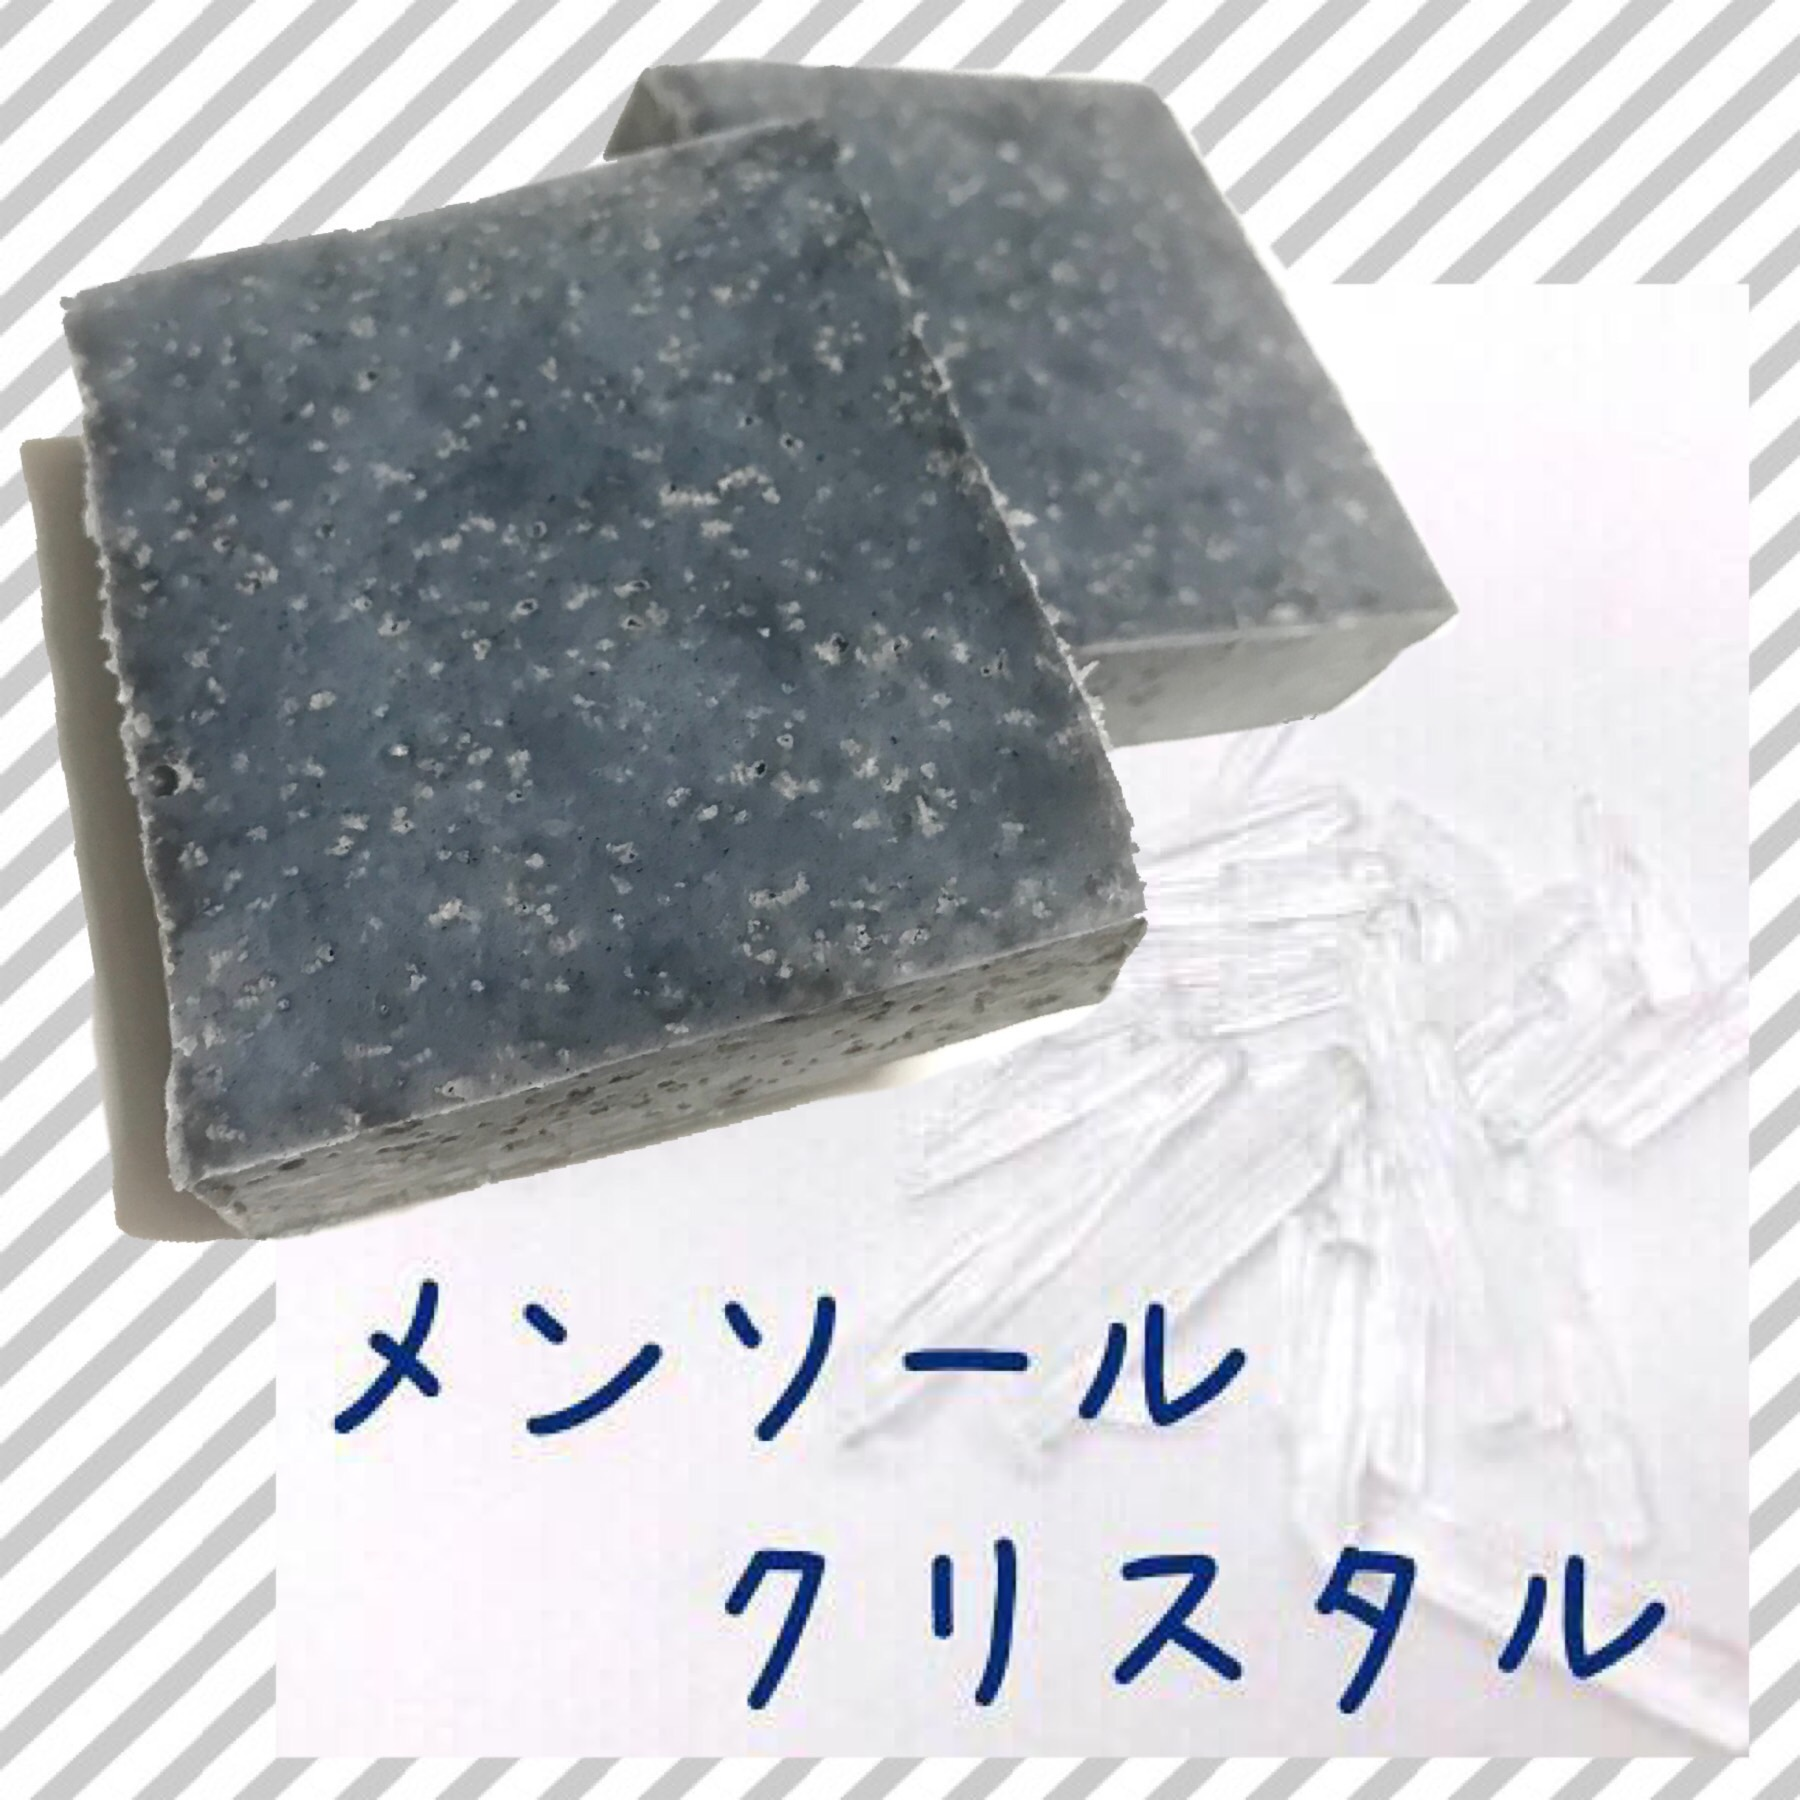 https://img14.shop-pro.jp/PA01185/173/etc/menthol_crystal_square.JPG?cmsp_timestamp=20190822224844